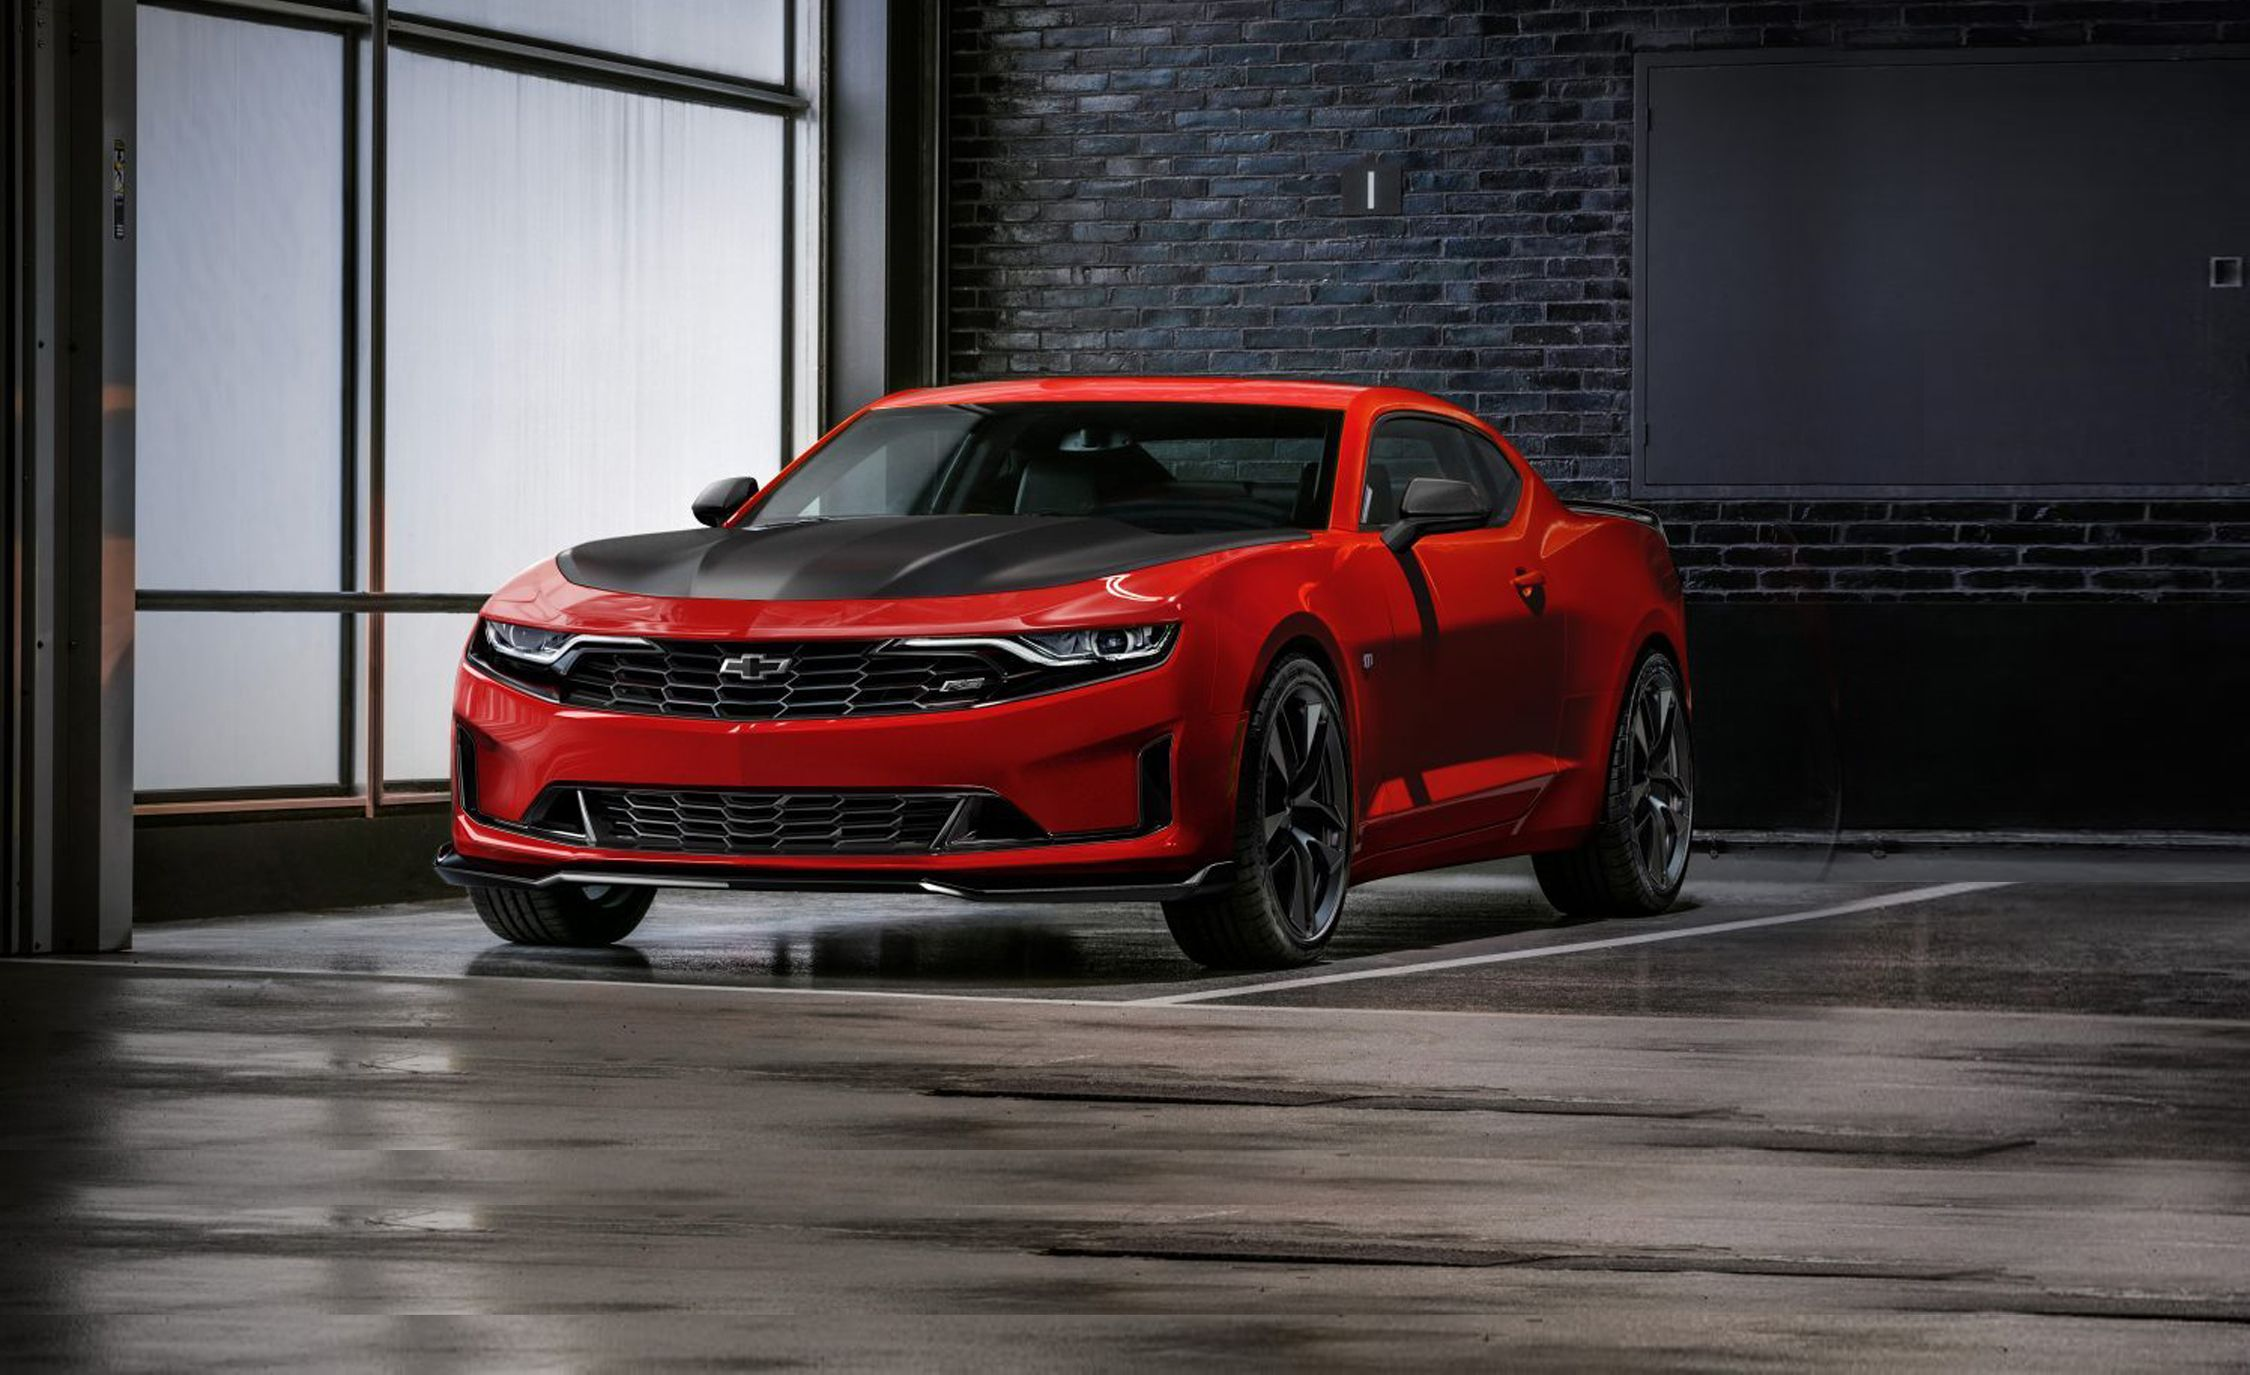 2019 Chevrolet Camaro 2 0T 1LE Brings Track Chops to the Turbo